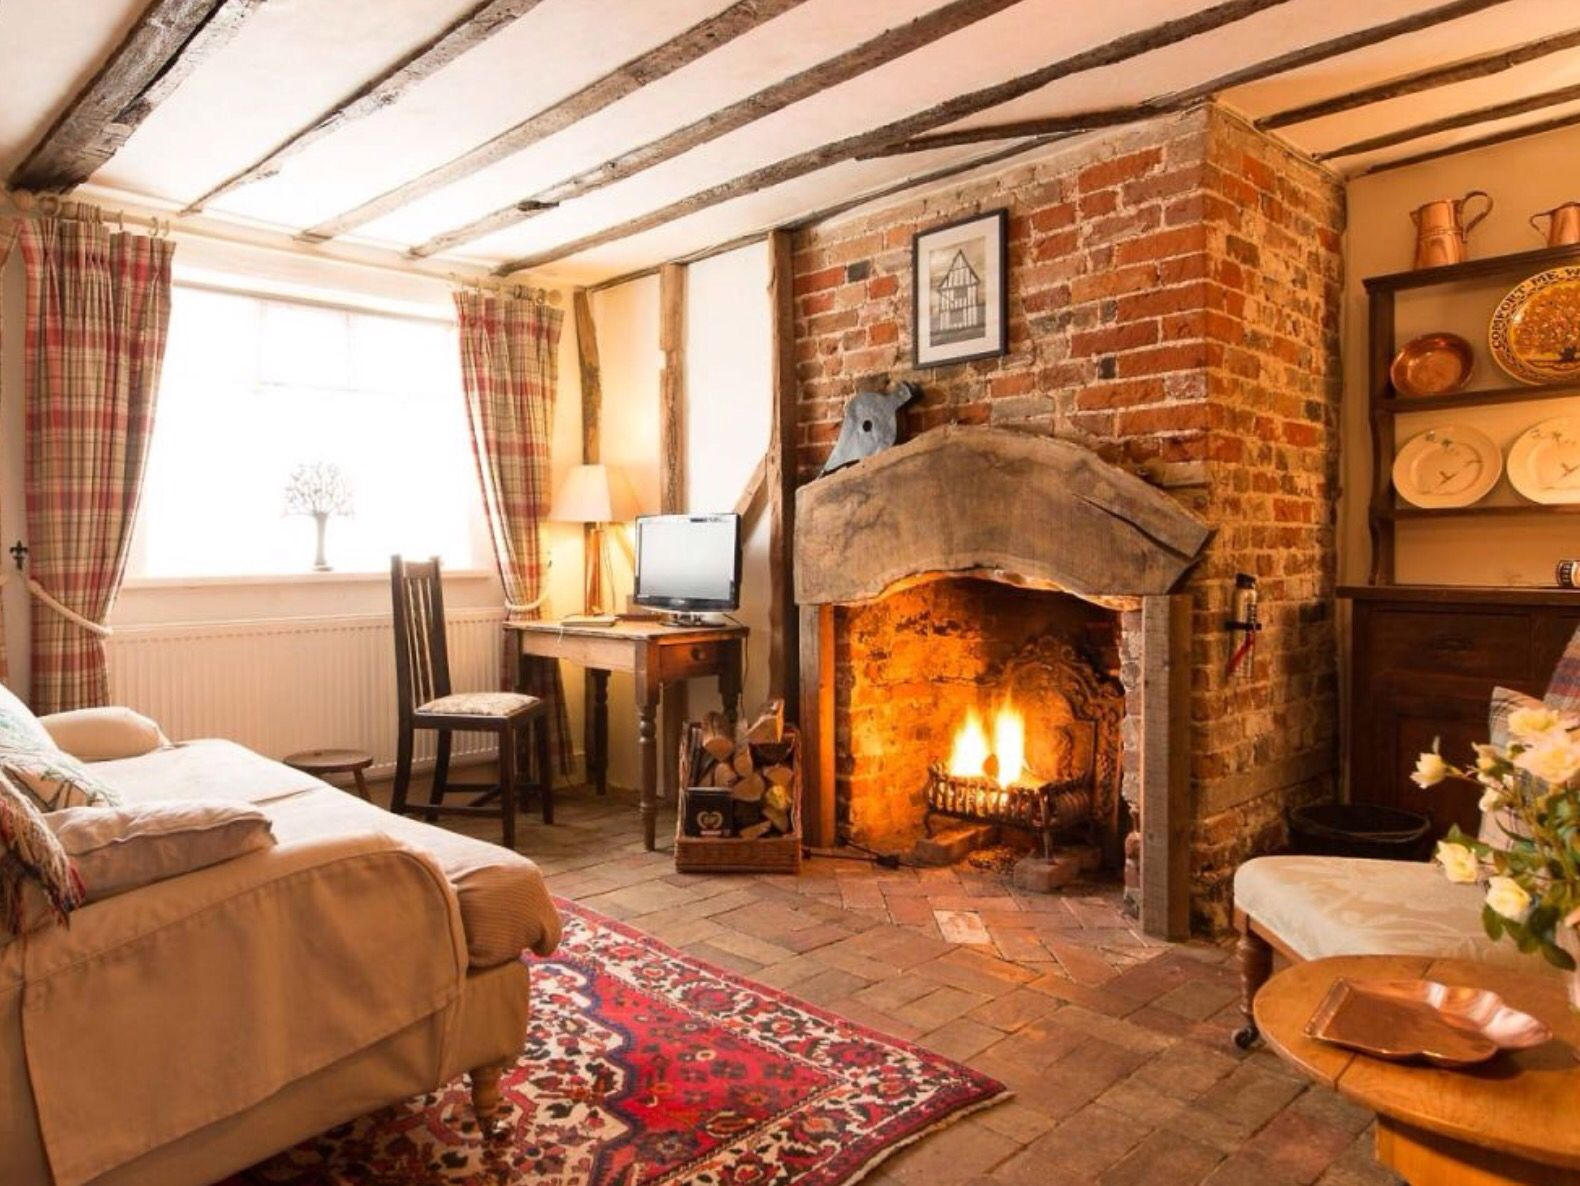 Old Brick Fireplace Cottage Living Rooms Country Living Room Cottage Style Living Room